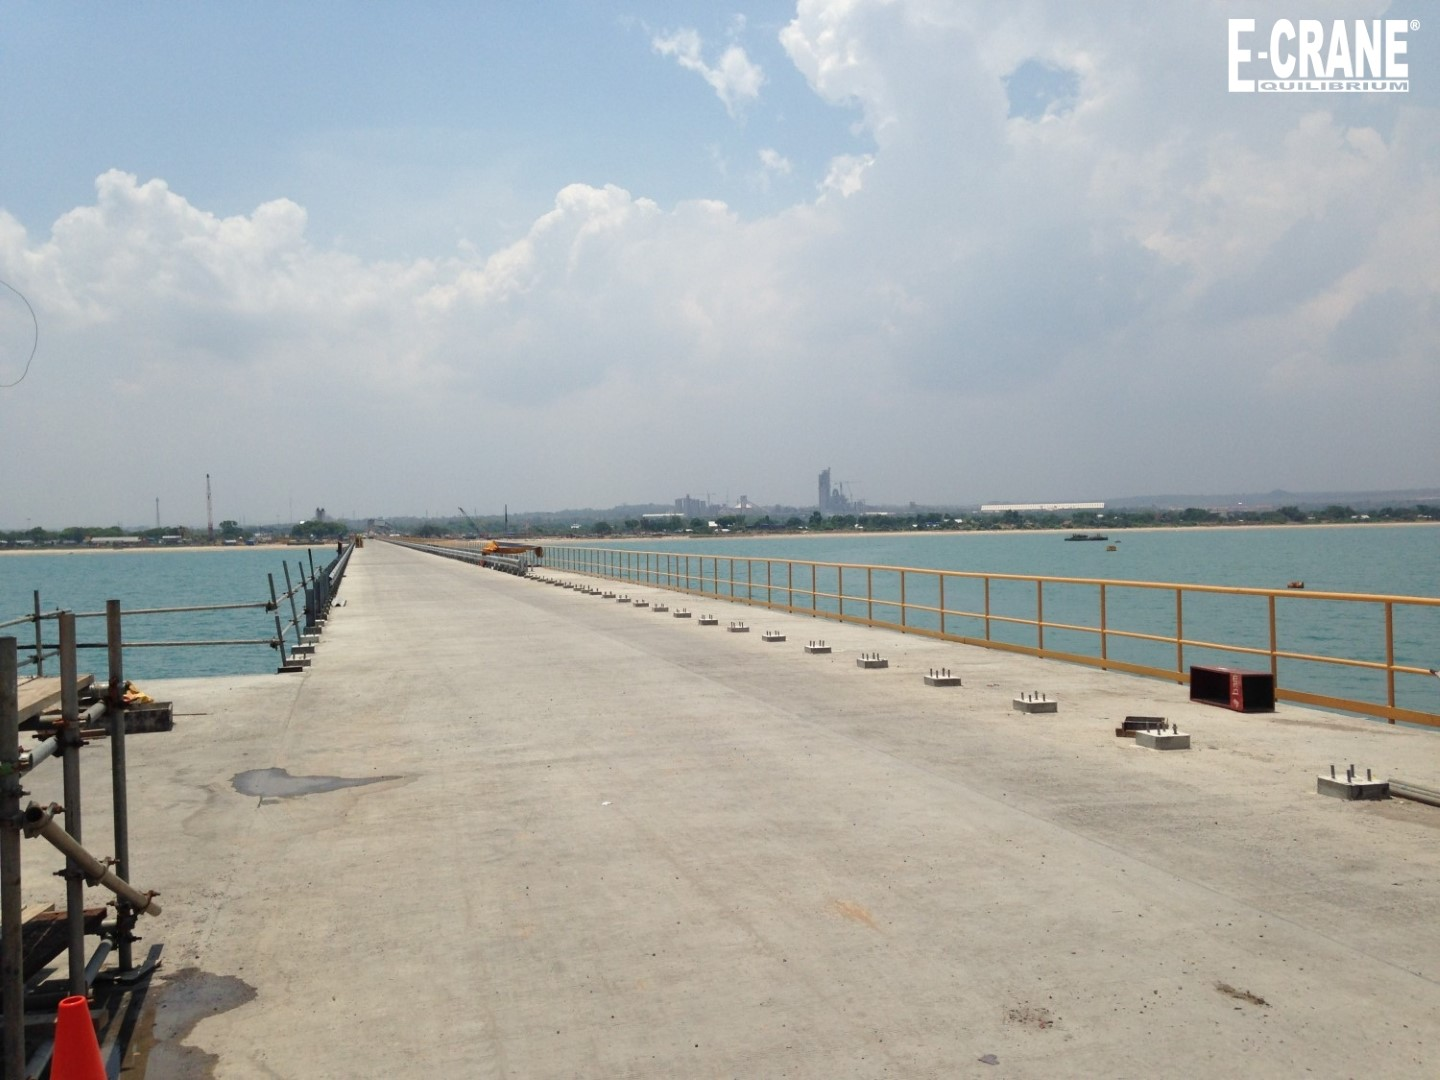 View of the new cement plant from the jetty